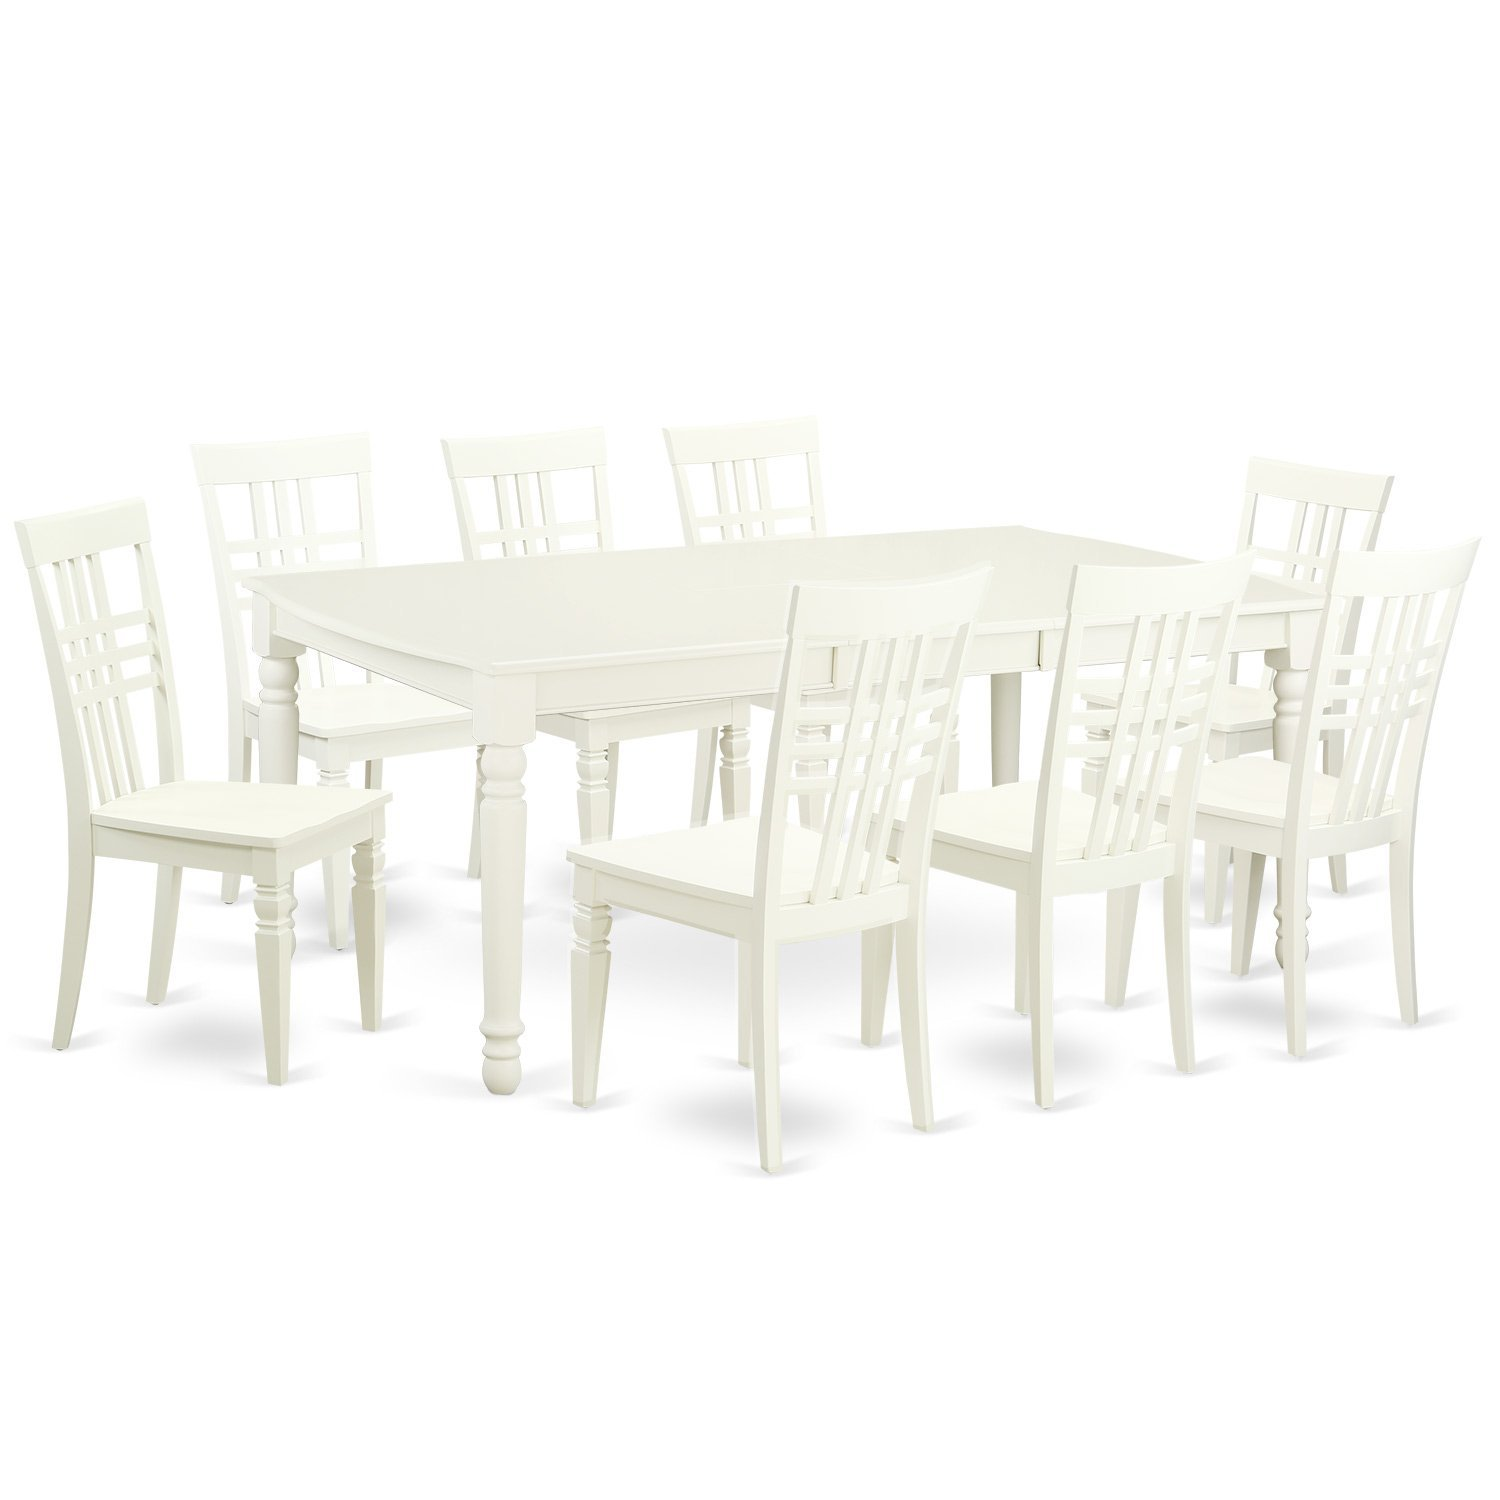 East West Furniture DOLG9-LWH-W 5 PC Kitchen Tables & Chair Set with One Dover Dining Table & 8 Kitchen Chairs in Linen White Finish